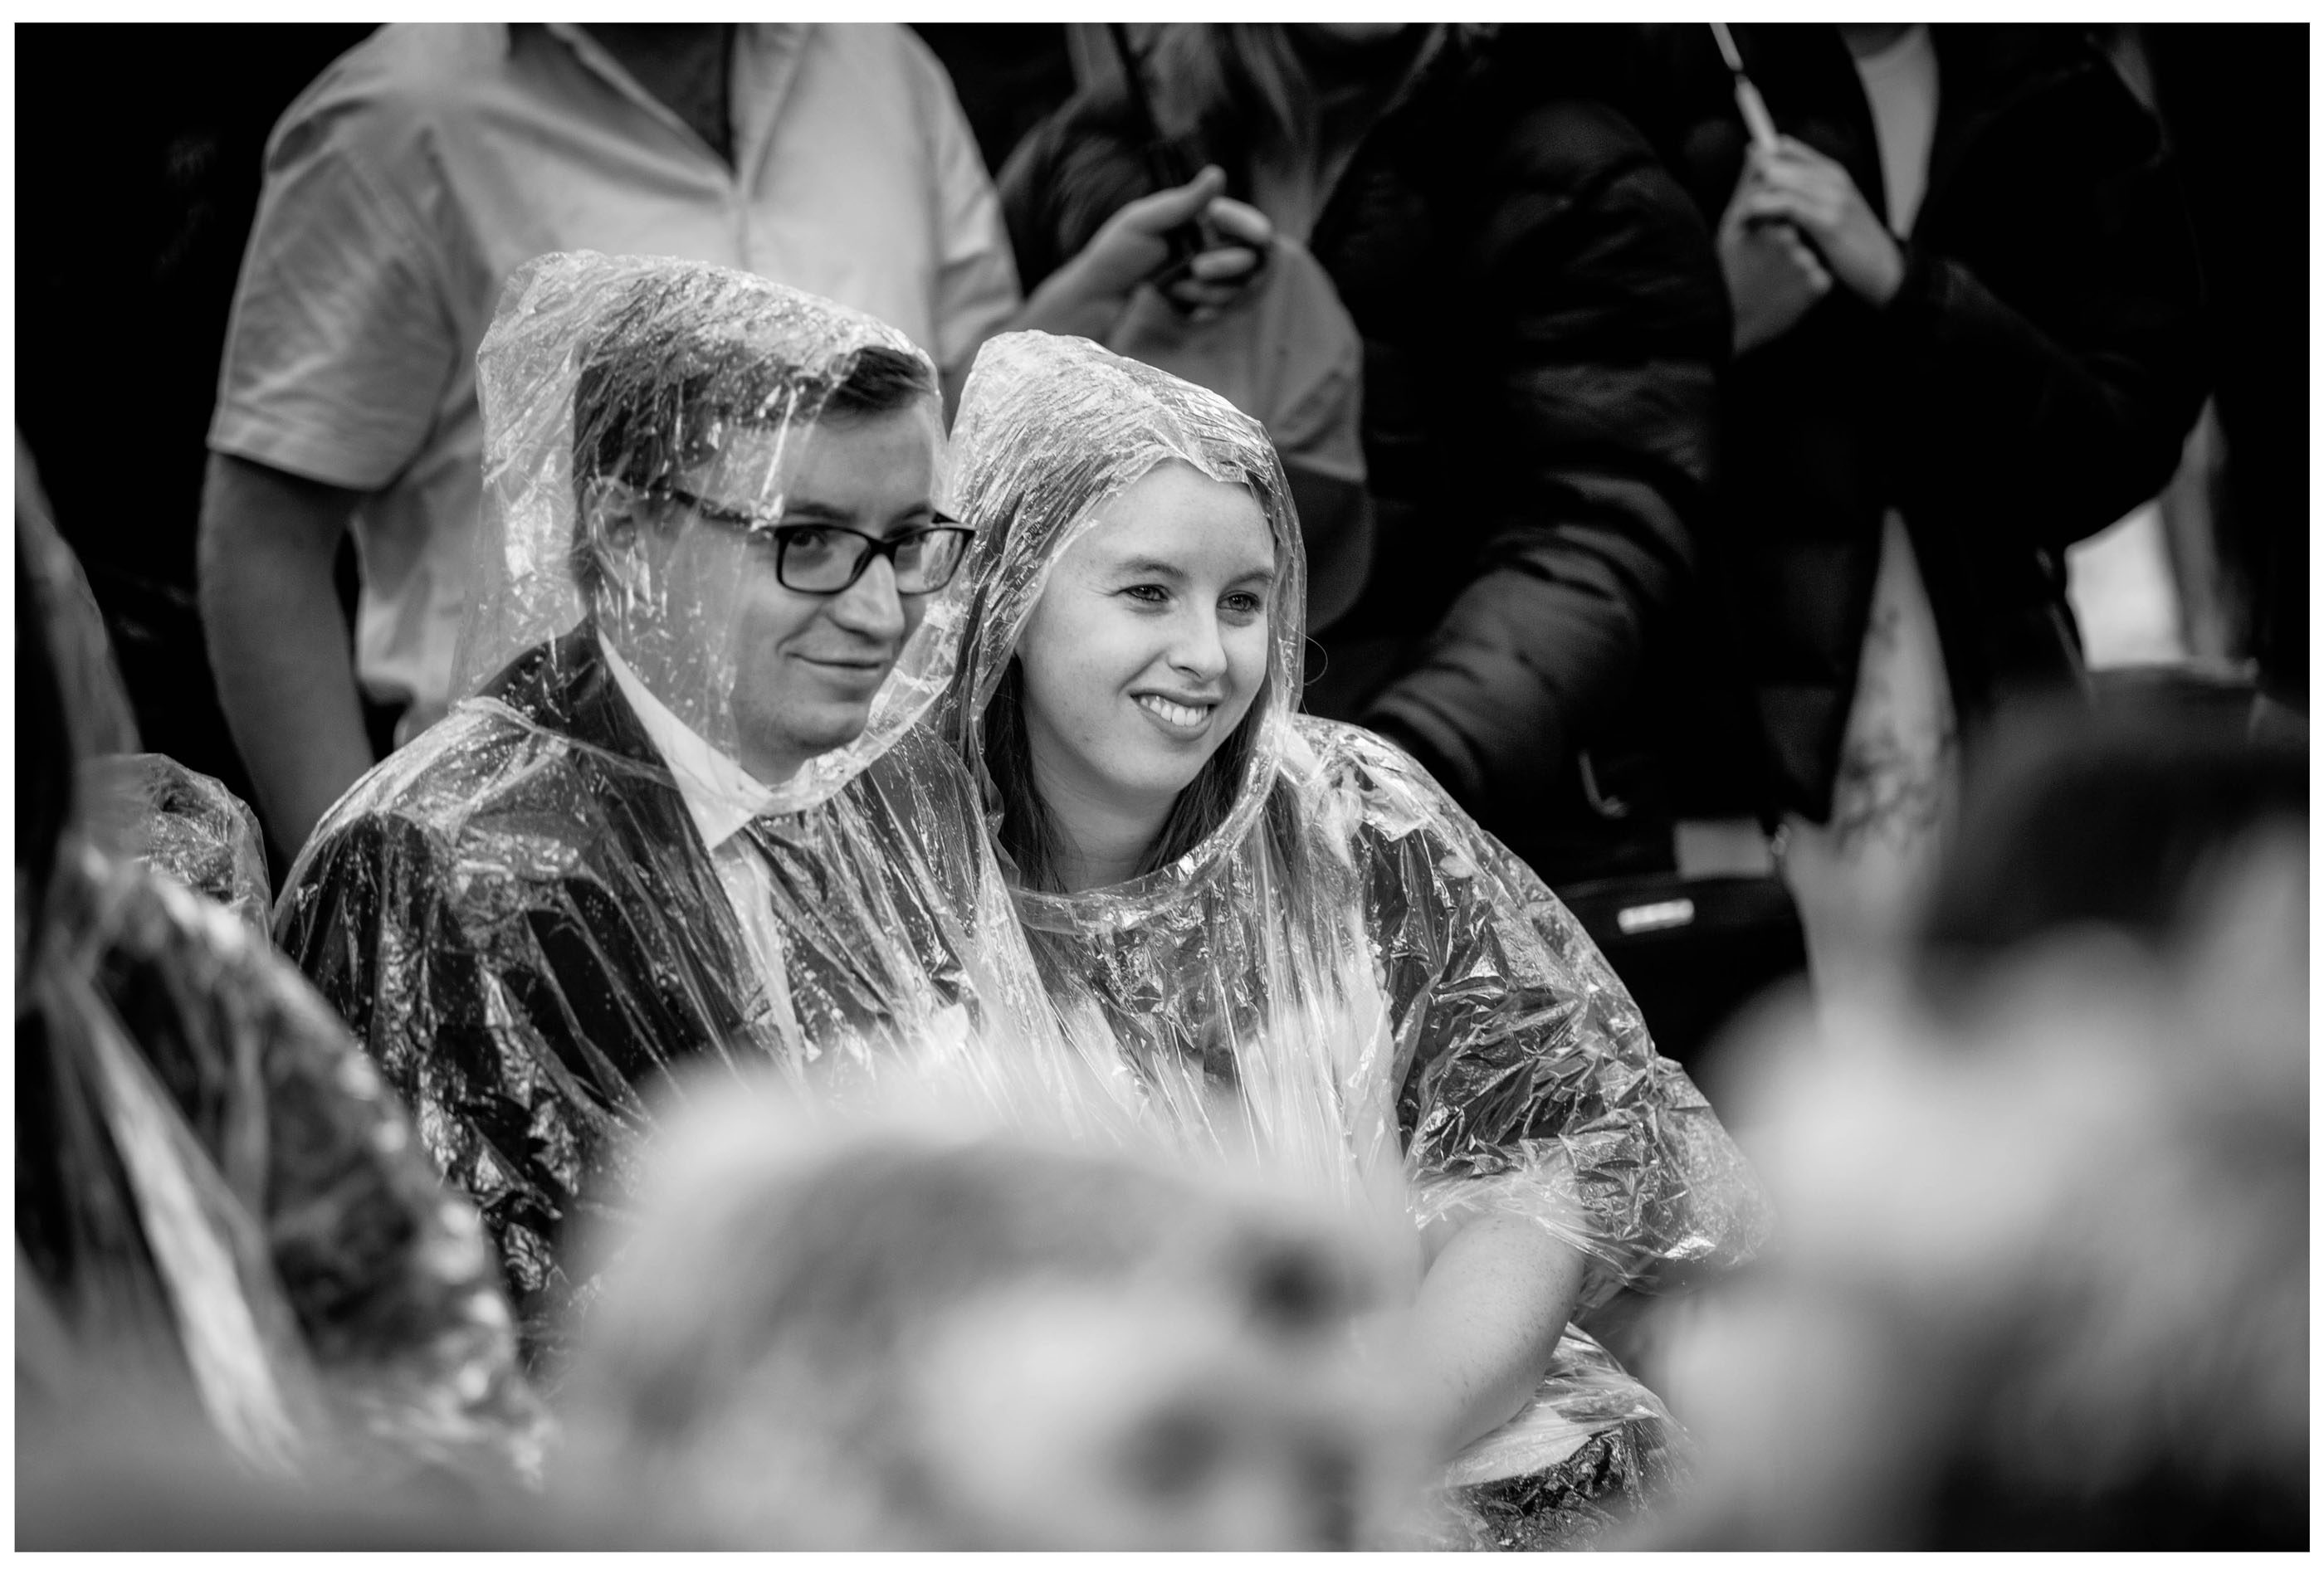 Wedding guests in rain ponchos at rainy outdoor Kumeu wedding